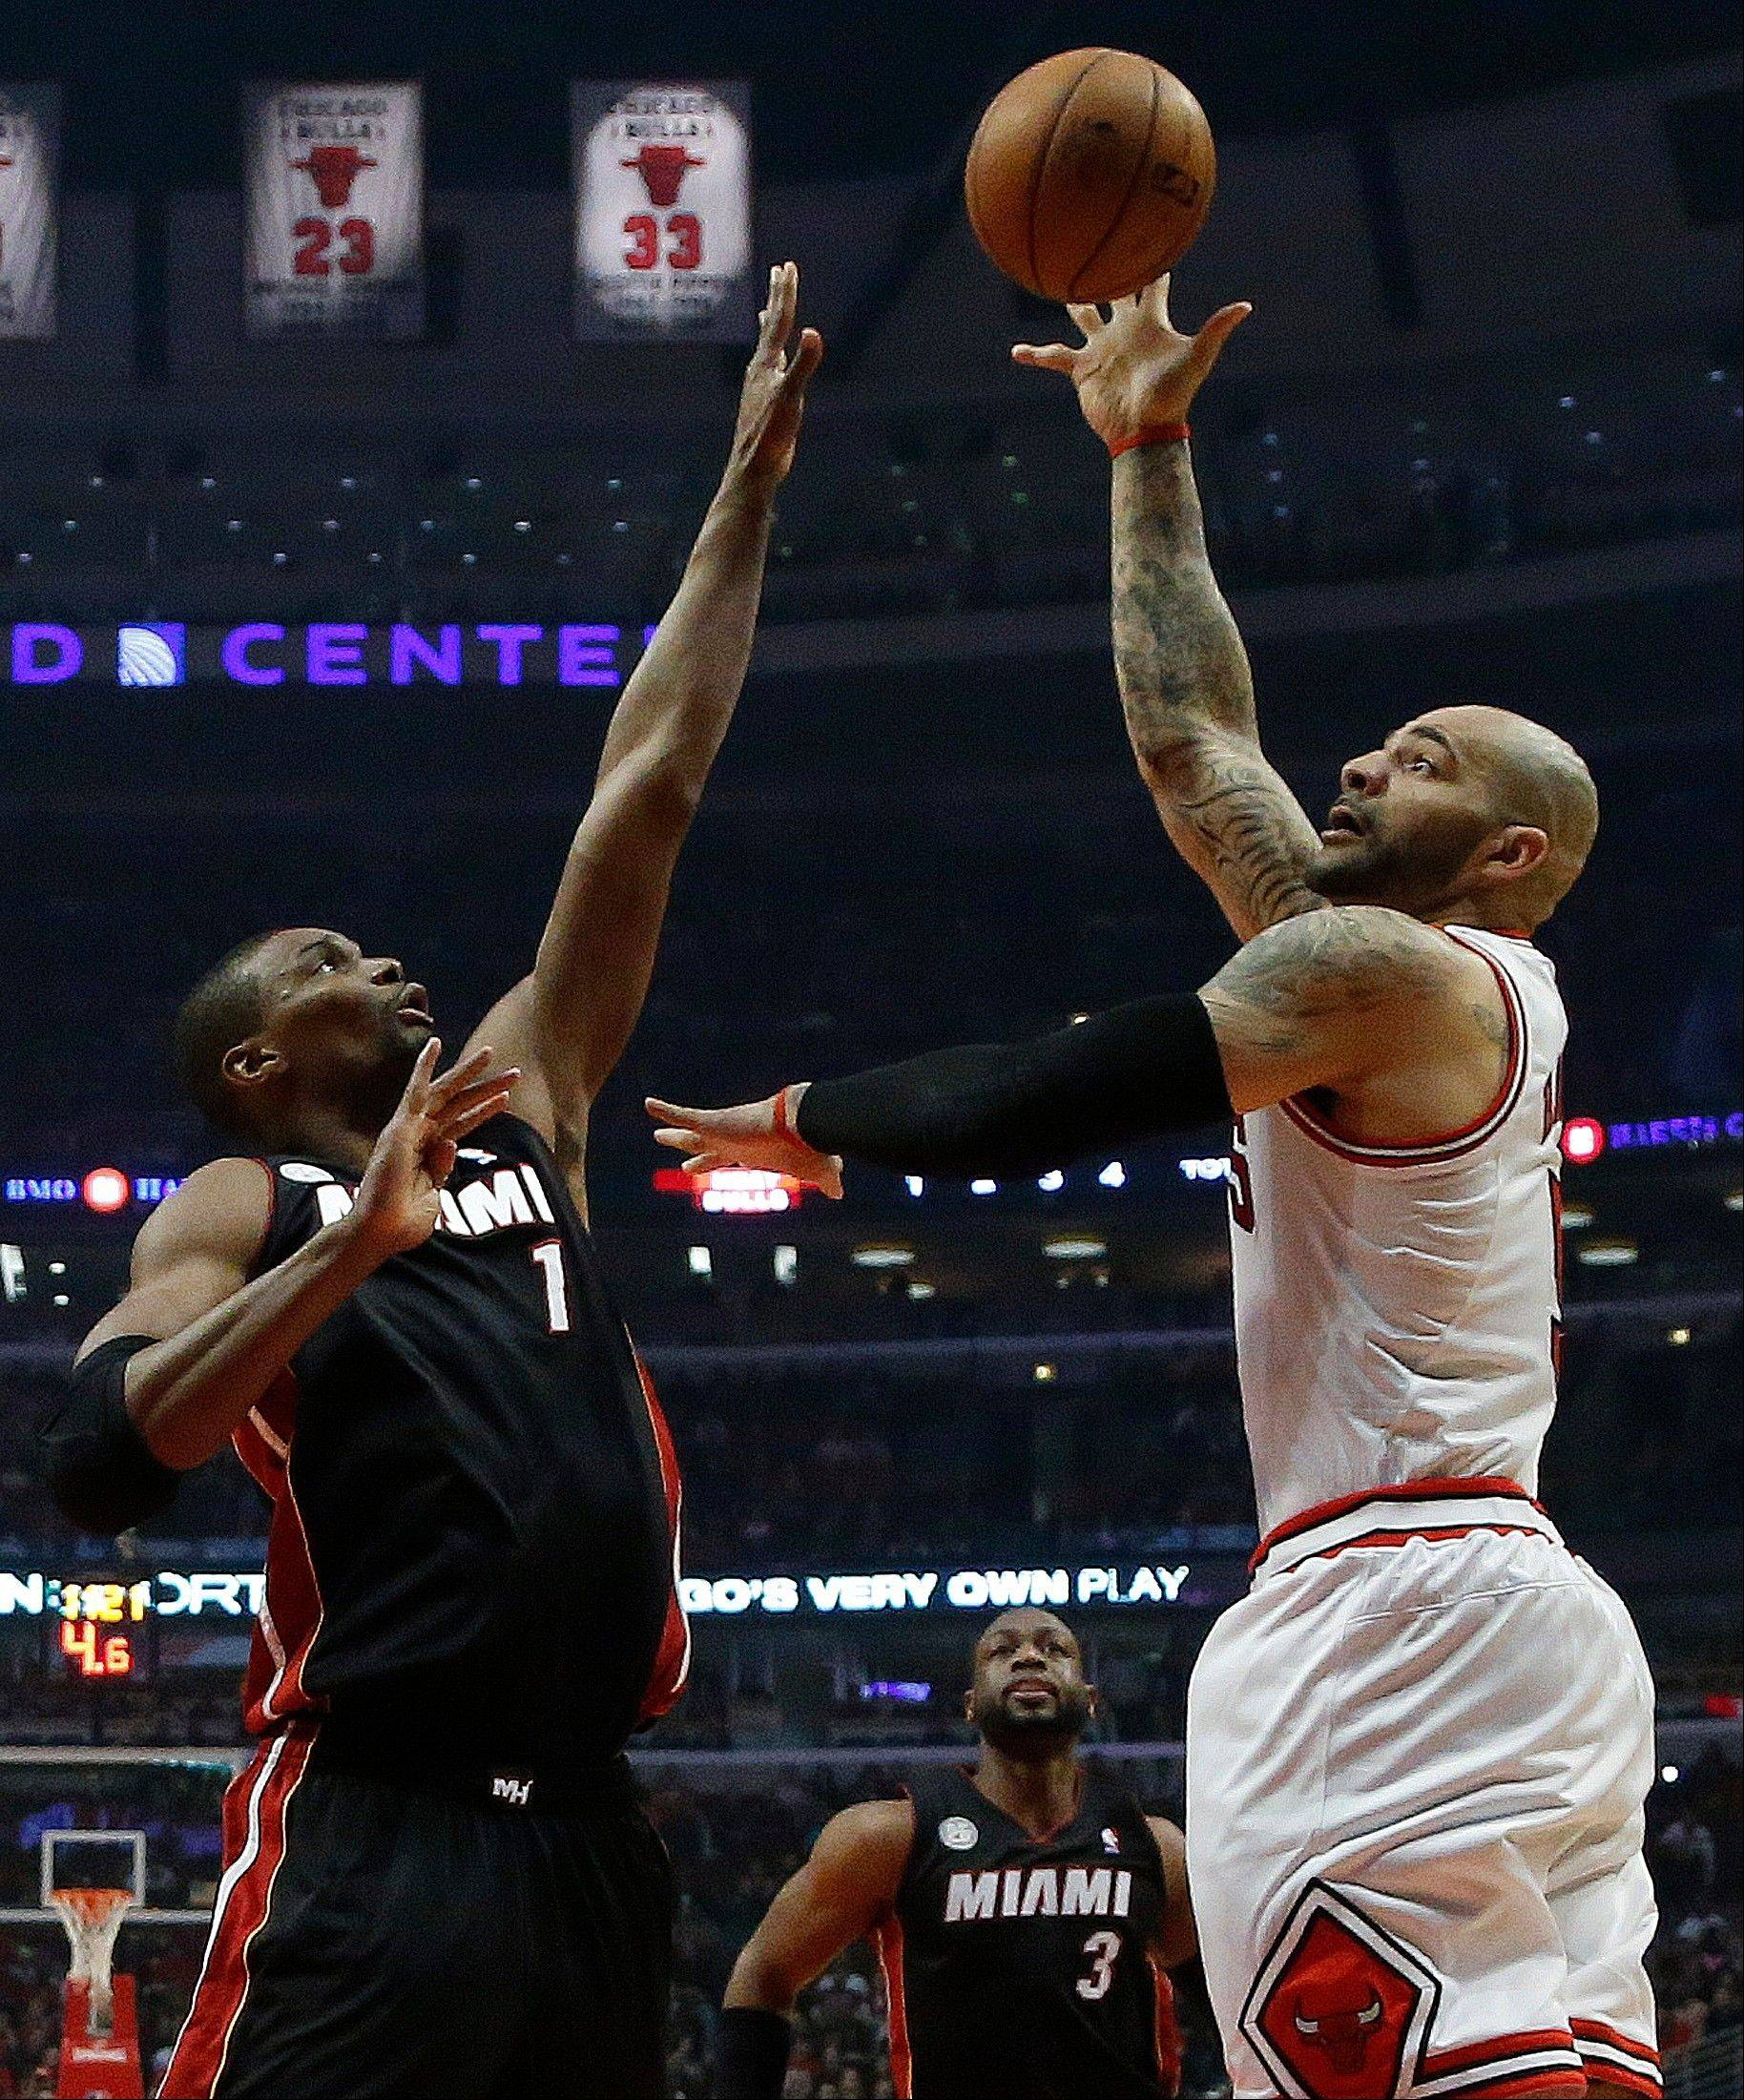 Chicago Bulls power forward Carlos Boozer (5) shoots over Miami Heat center Chris Bosh (1) during the first half of Game 3 of an NBA basketball playoffs Eastern Conference semifinal on Friday, May 10, 2013, in Chicago.